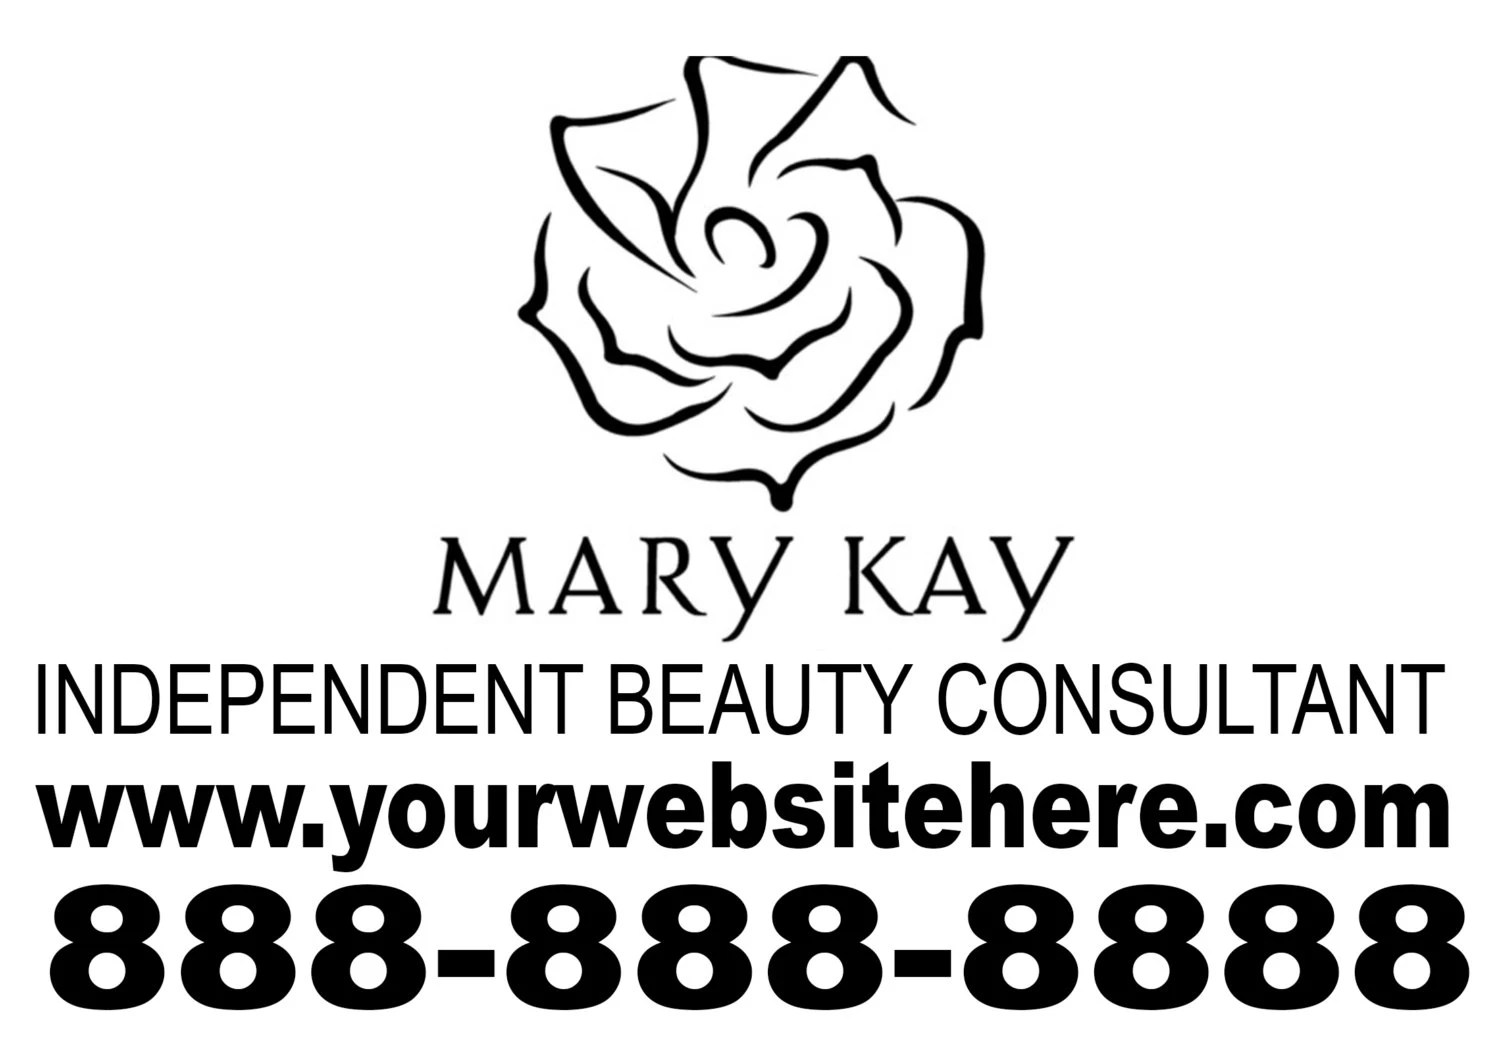 Mary Kay Independent Beauty Consultant Personalized by